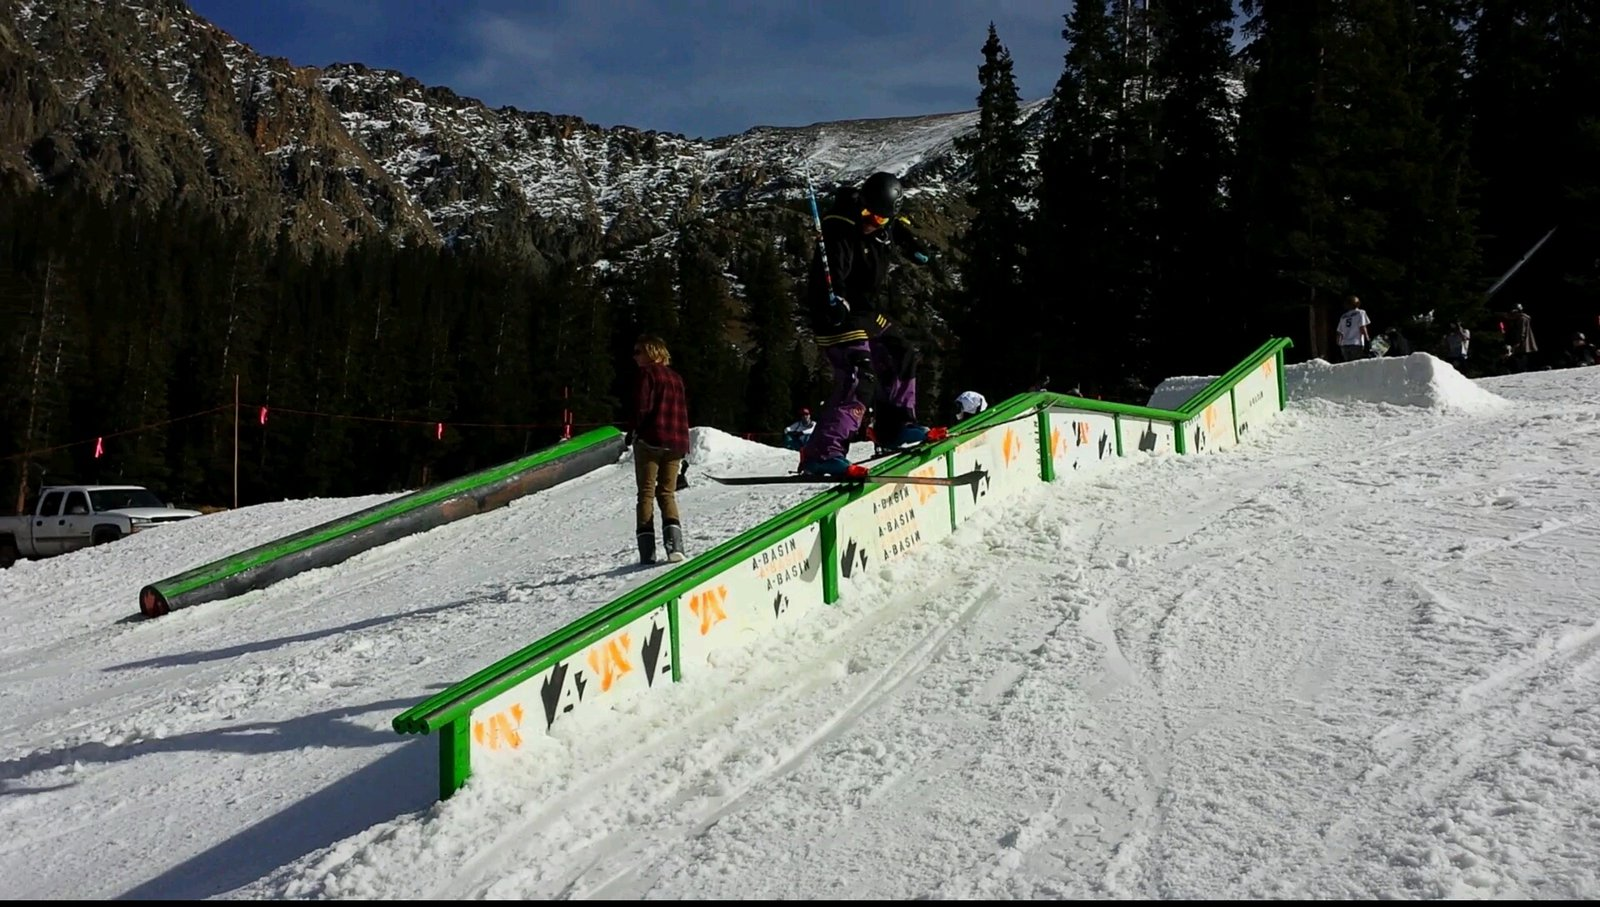 A-Basin Opening Day 2014